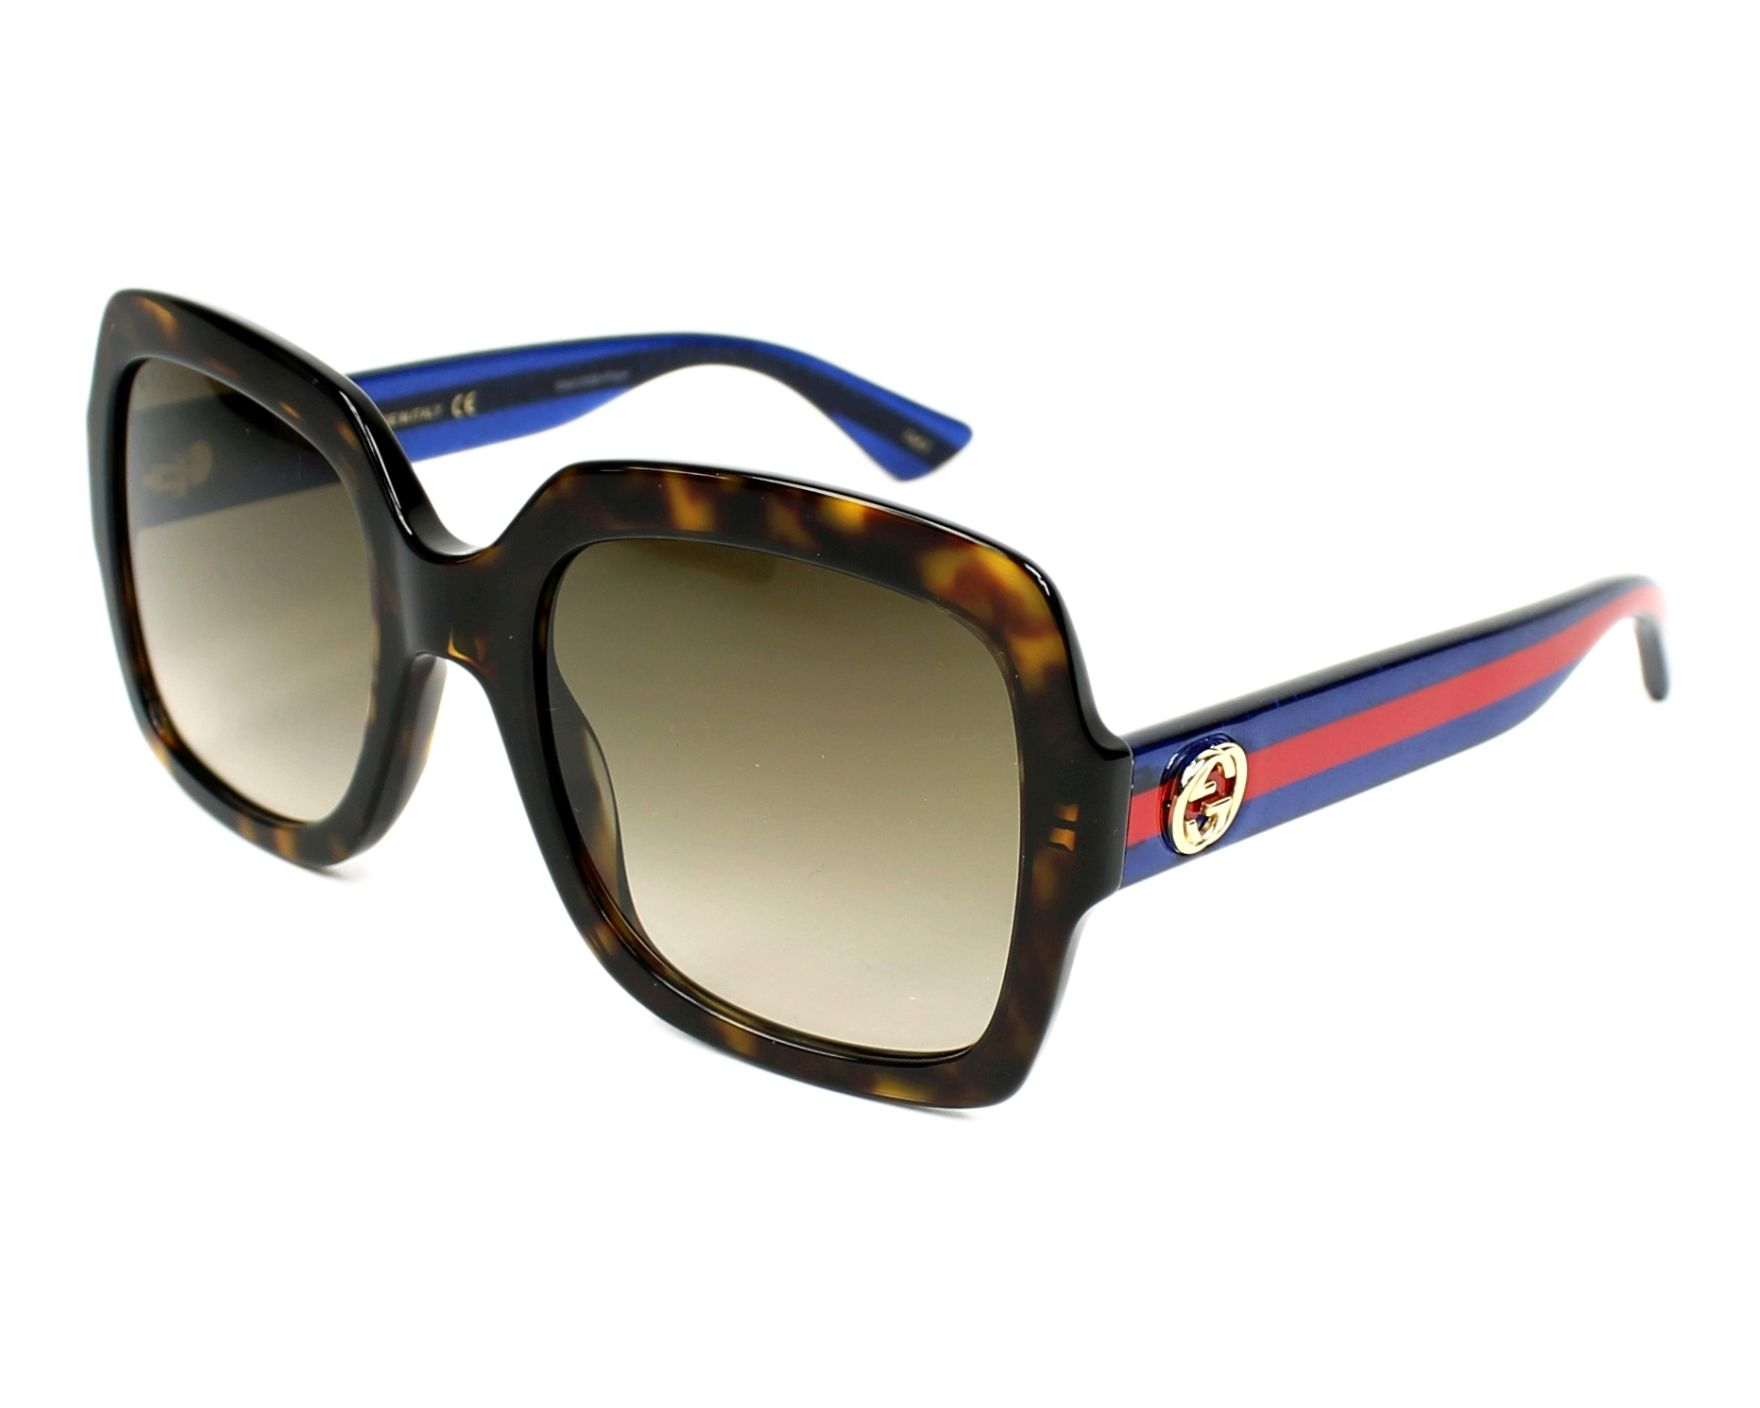 77b54abbe82 Sunglasses Gucci GG-0036-S 004 54-22 Havana Blue profile view